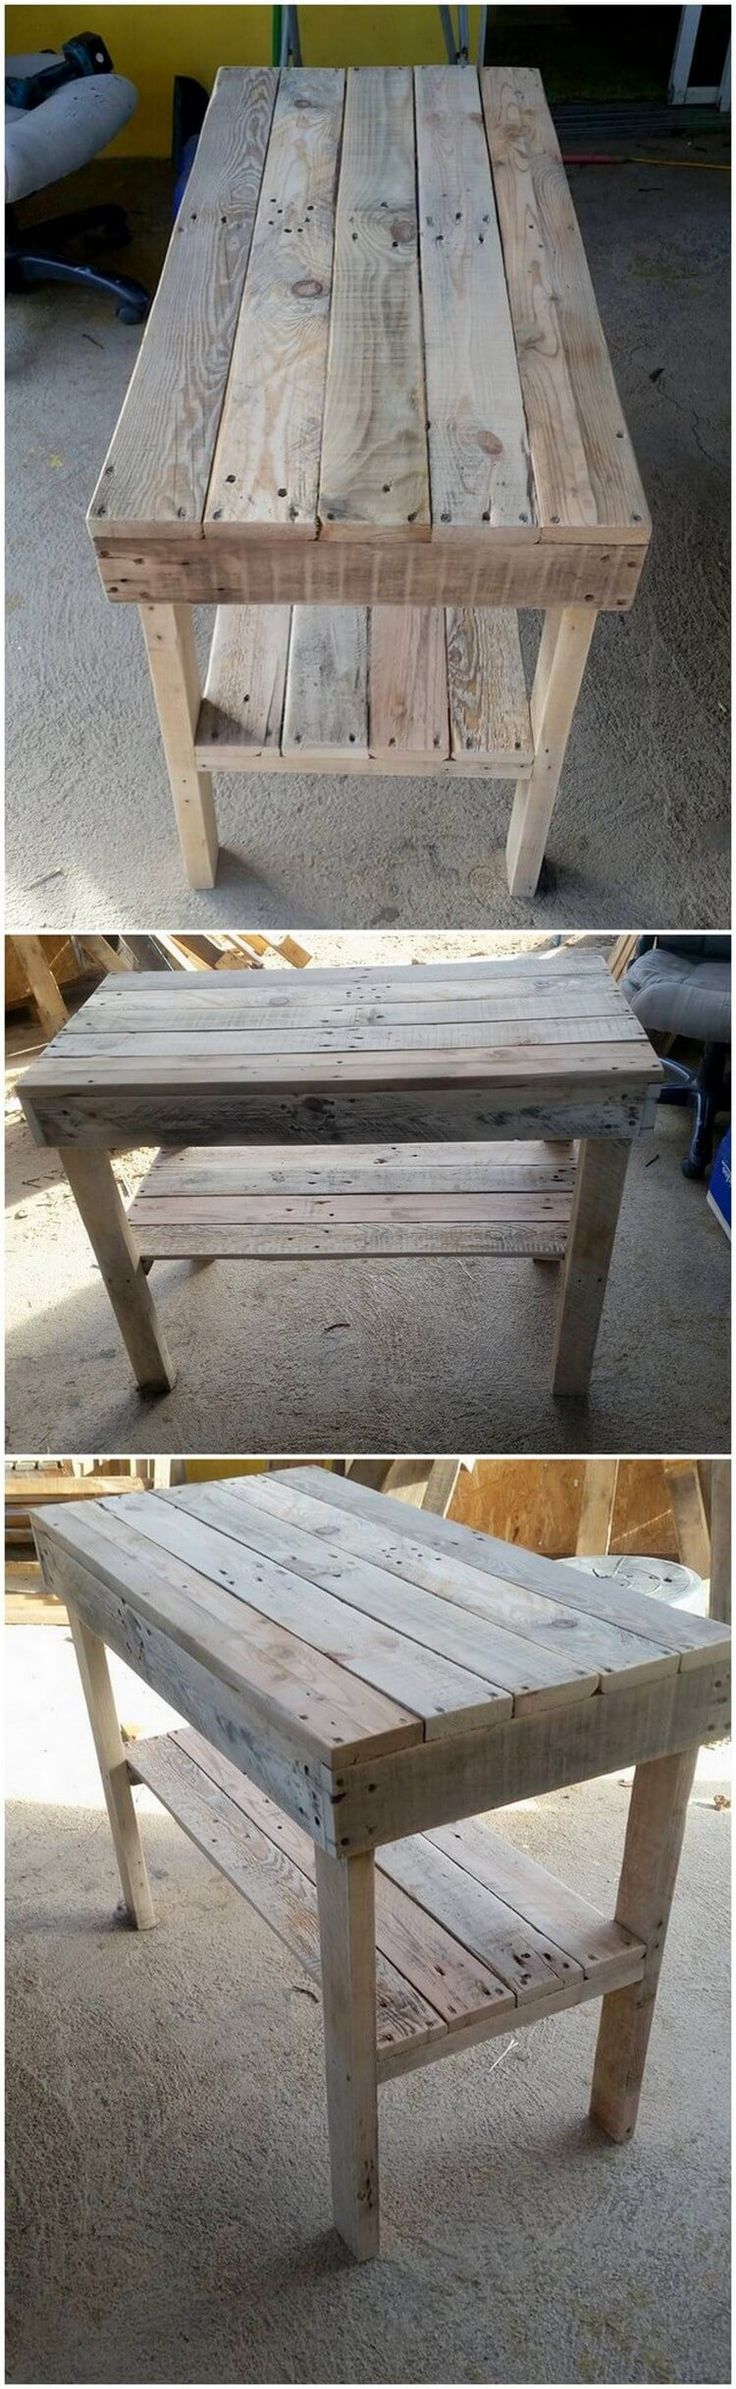 Why to look for a giant table product, when you can arrange at the best in the miniature formations? Think about and have a quick look at this interesting structure of wood pallet table design that do act as the dining table furniture. Overall design is so simply and plain.